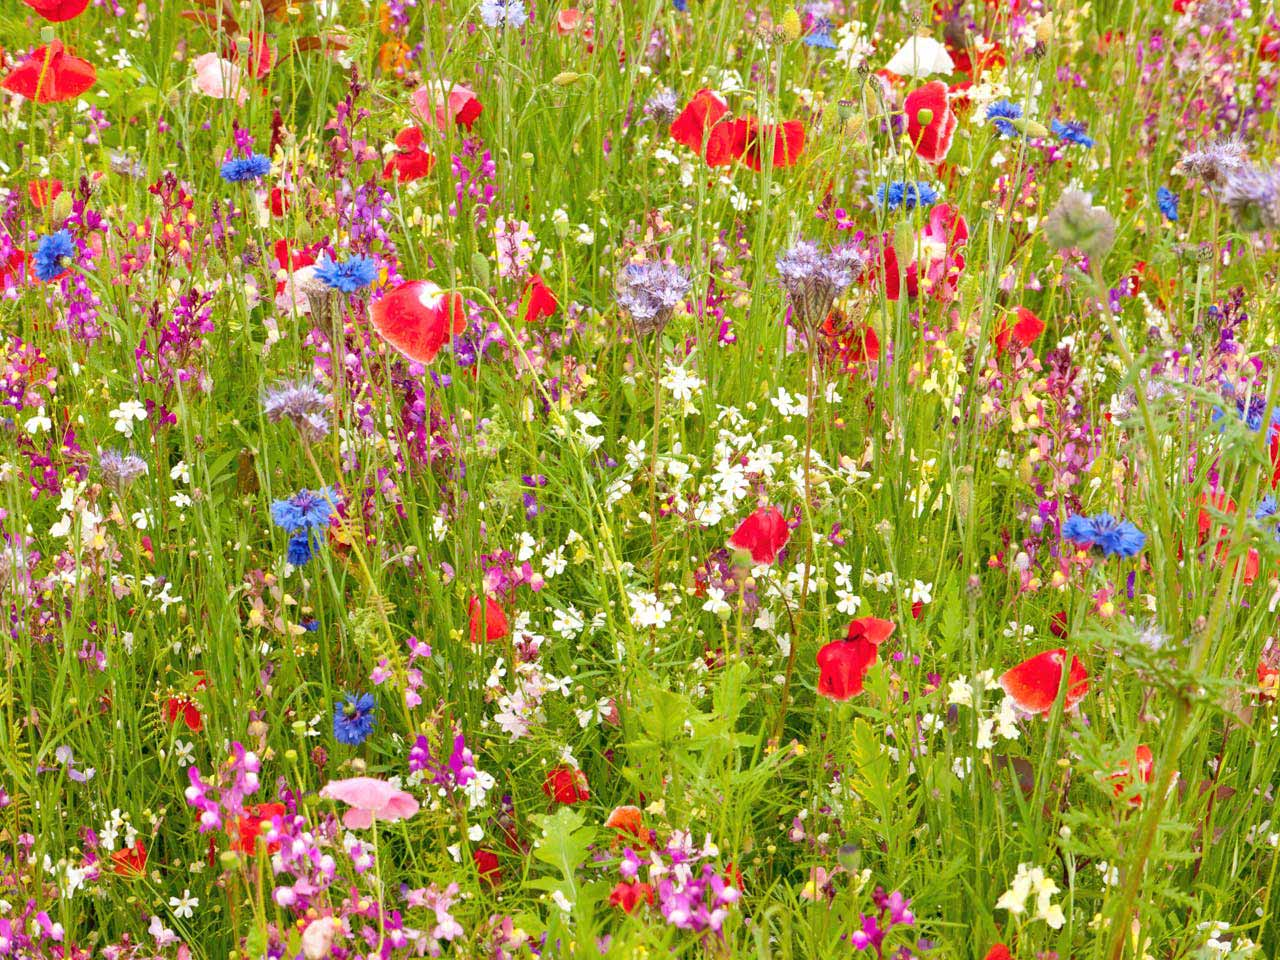 Beautiful meadow with green grass, and bright red, purple and blue flowers